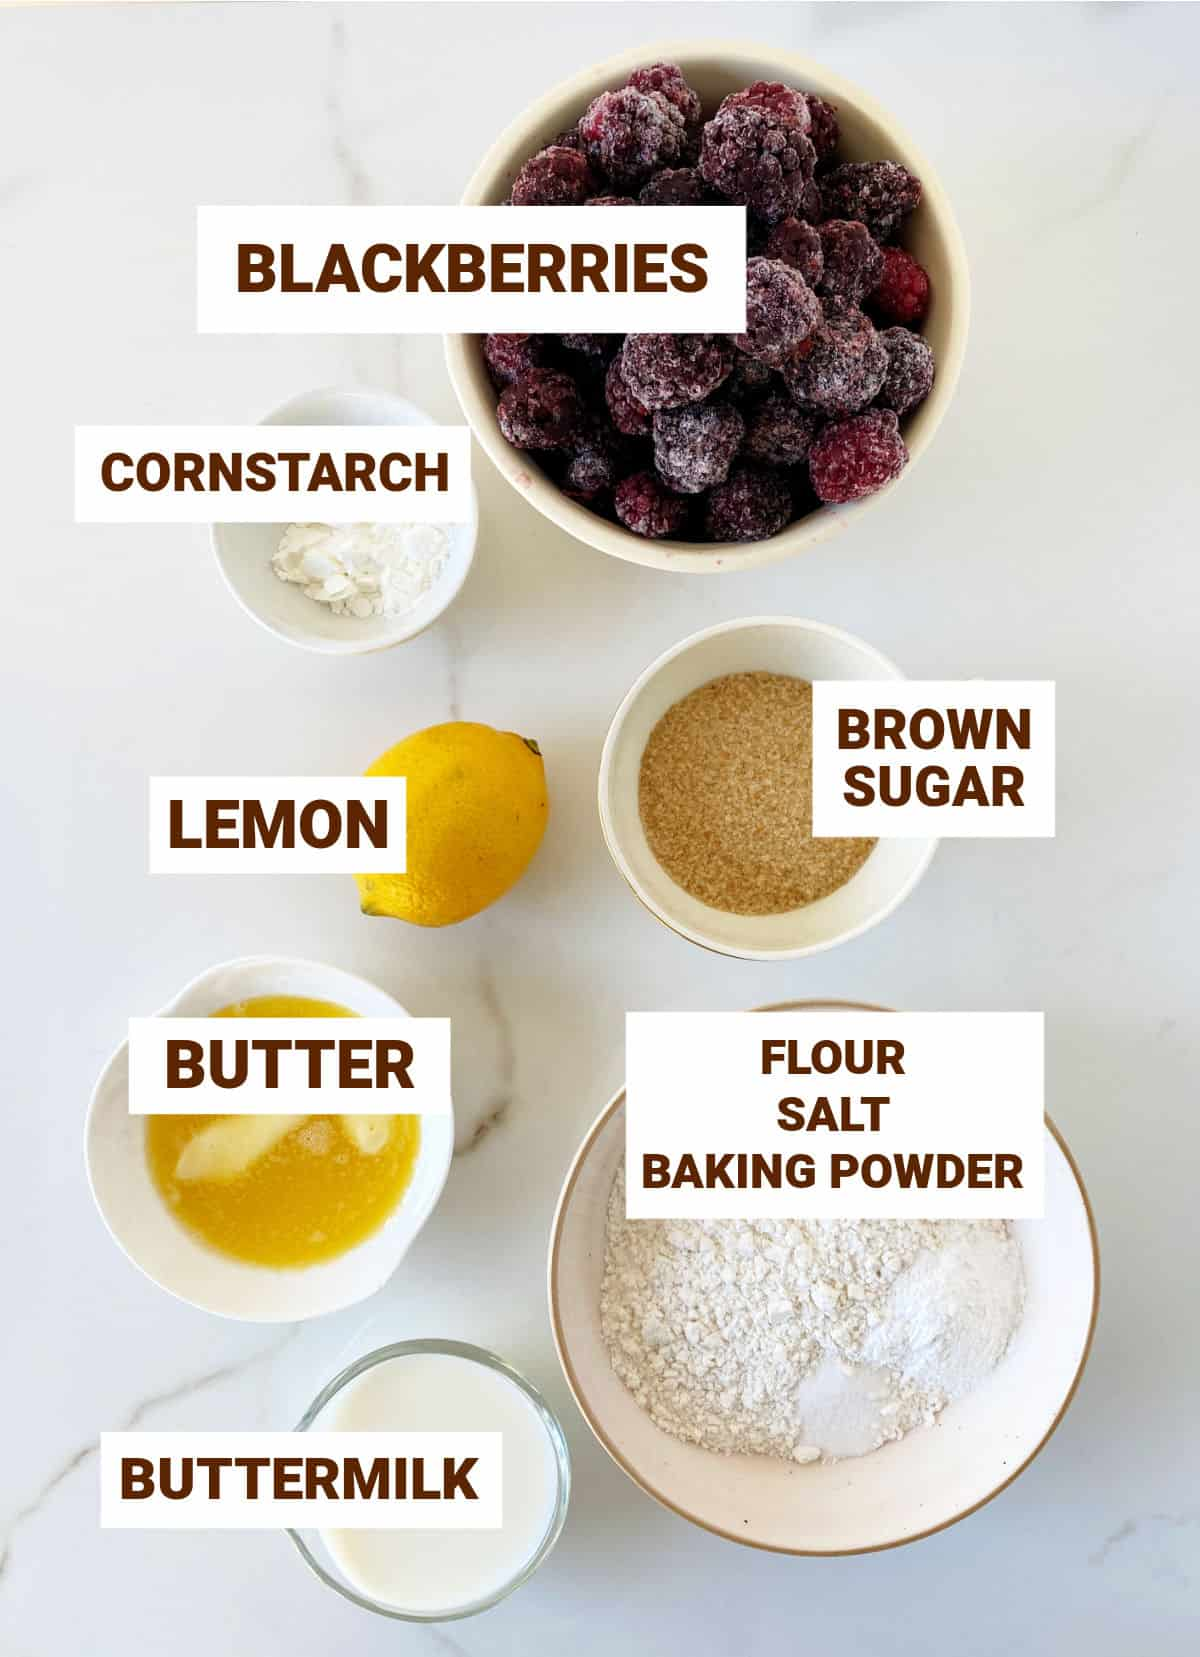 White surface with bowls containing blackberry cobbler ingredients including lemon, brown sugar, butter, dry mixture